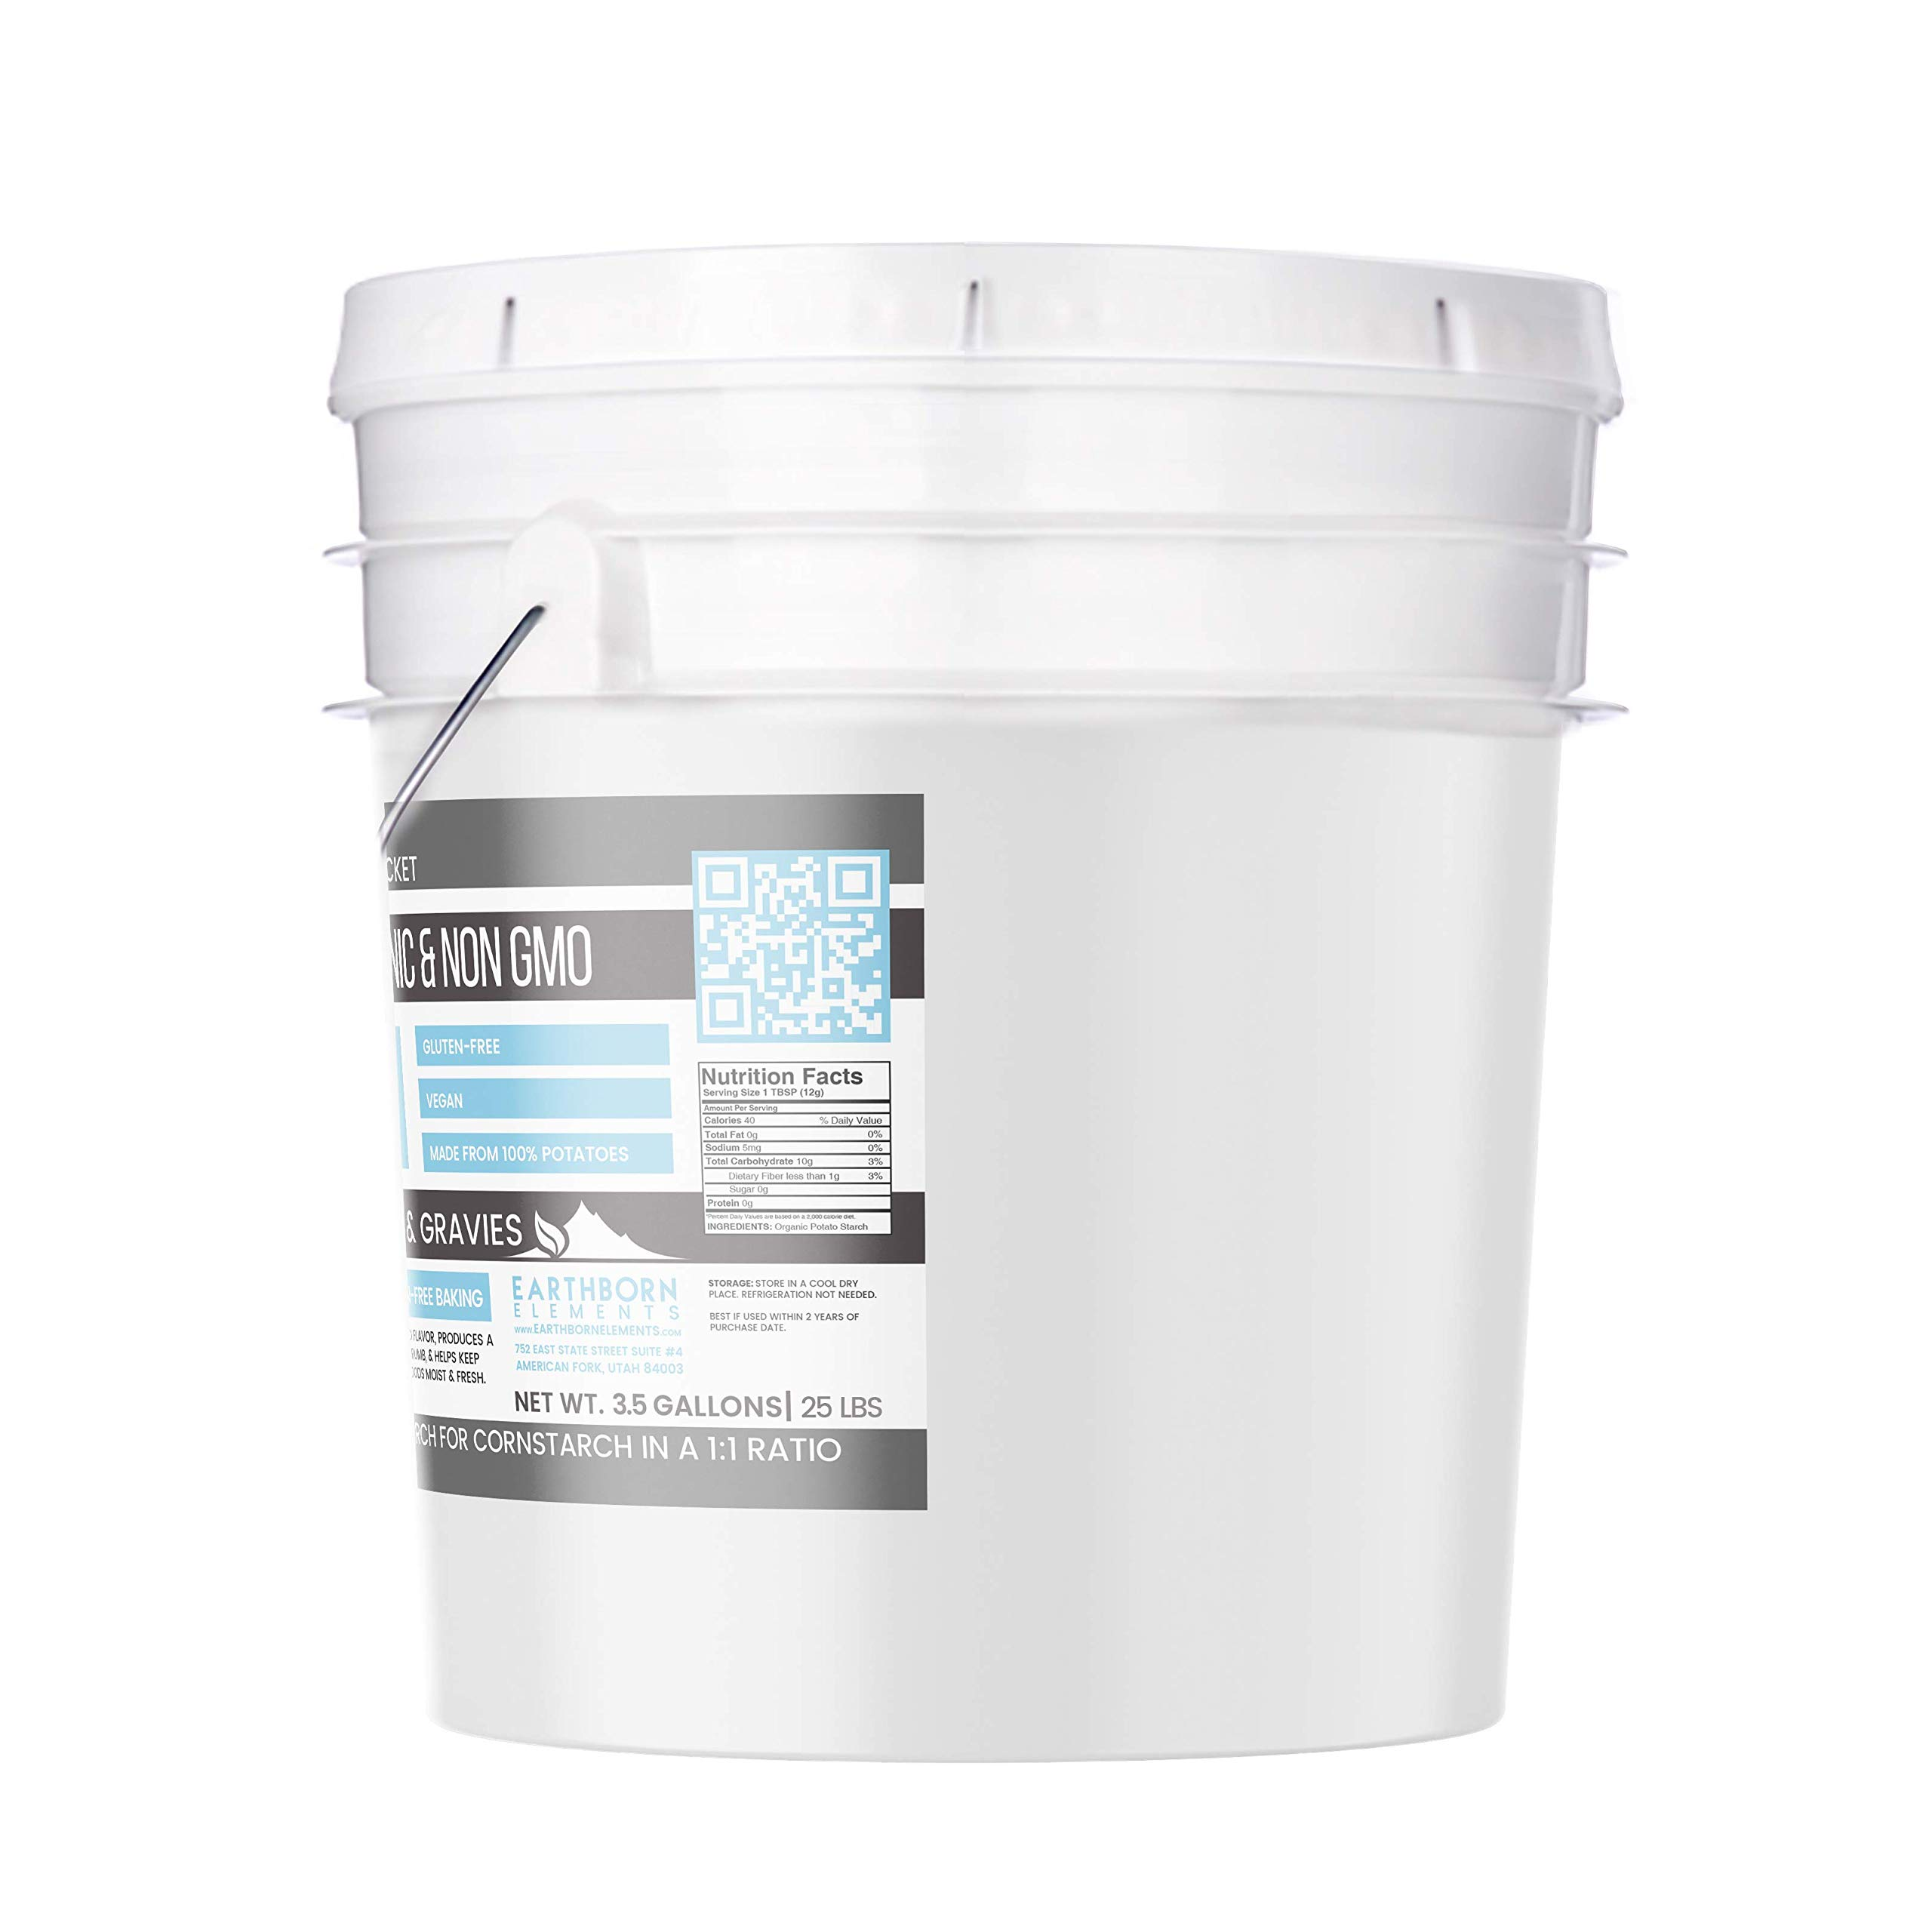 Potato Starch (3.5 gallon (25 lbs.)) by Earthborn Elements, Resealable bucket, Gluten-Free, NON-GMO, All-Natural, Thickener For Sauces, Soup, & Gravy, No Added Preservatives Or Artificial Ingredients by Earthborn Elements (Image #2)